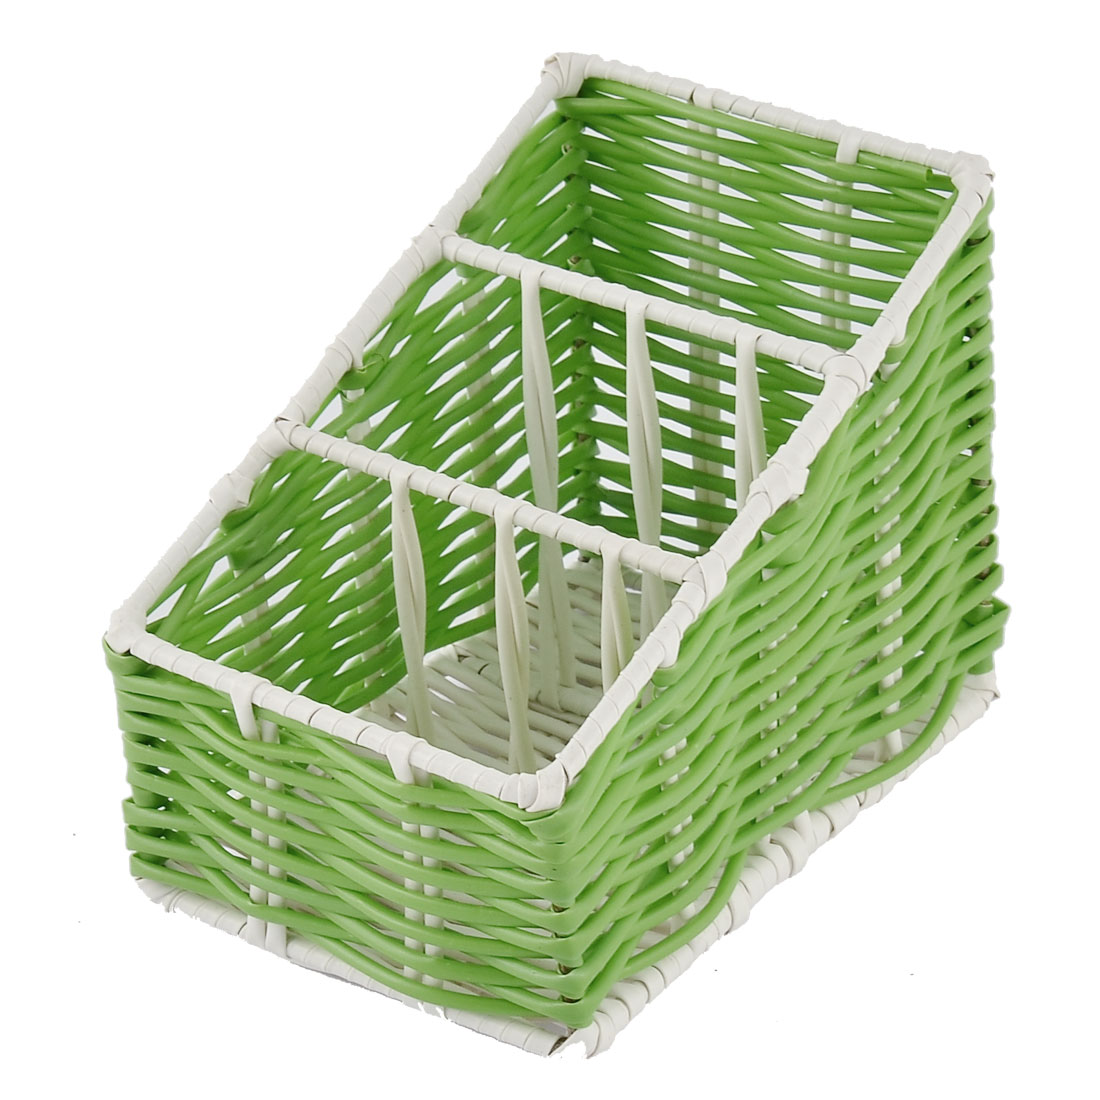 Kitchen Desk Household Plastic 3 Grids Woven Organizer Storage Box Case Basket Green